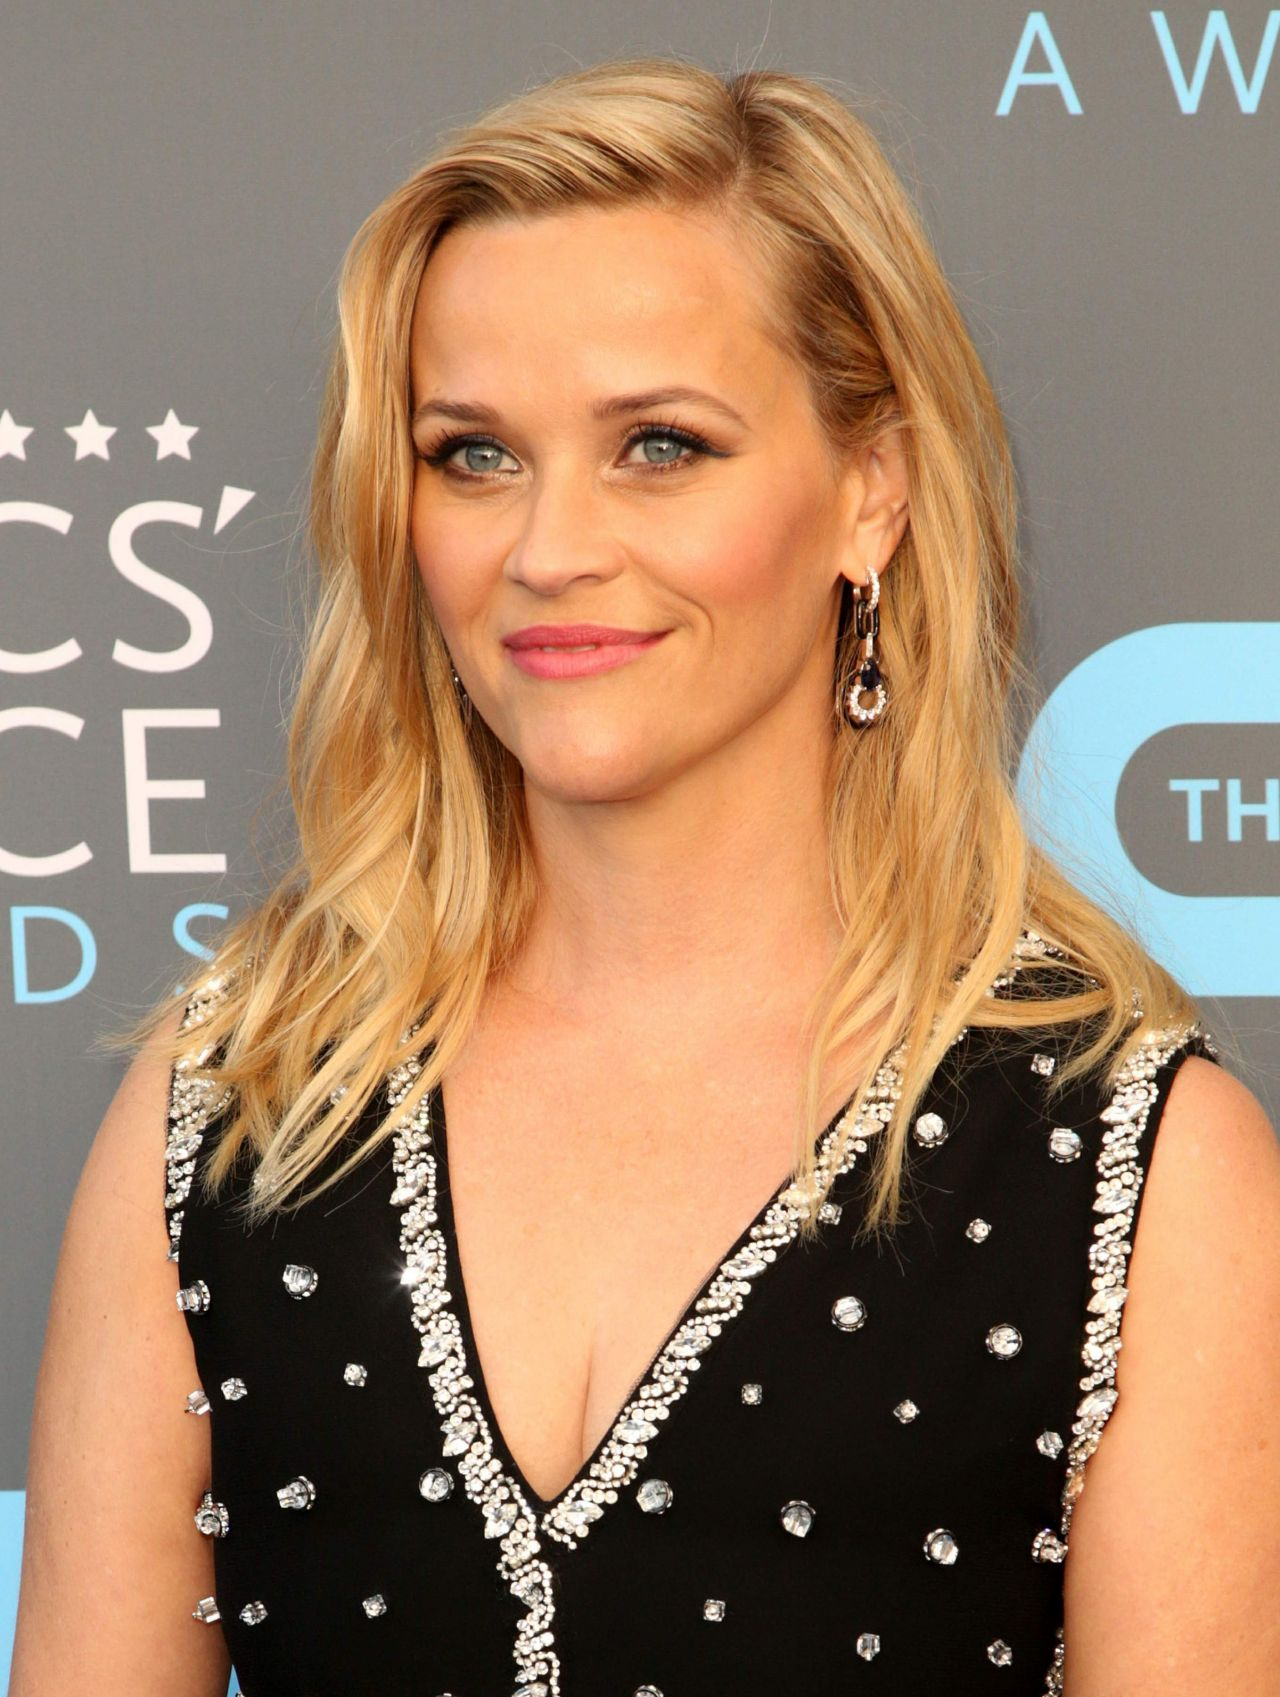 http://celebmafia.com/wp-content/uploads/2018/01/reese-witherspoon-2018-critics-choice-awards-5.jpg